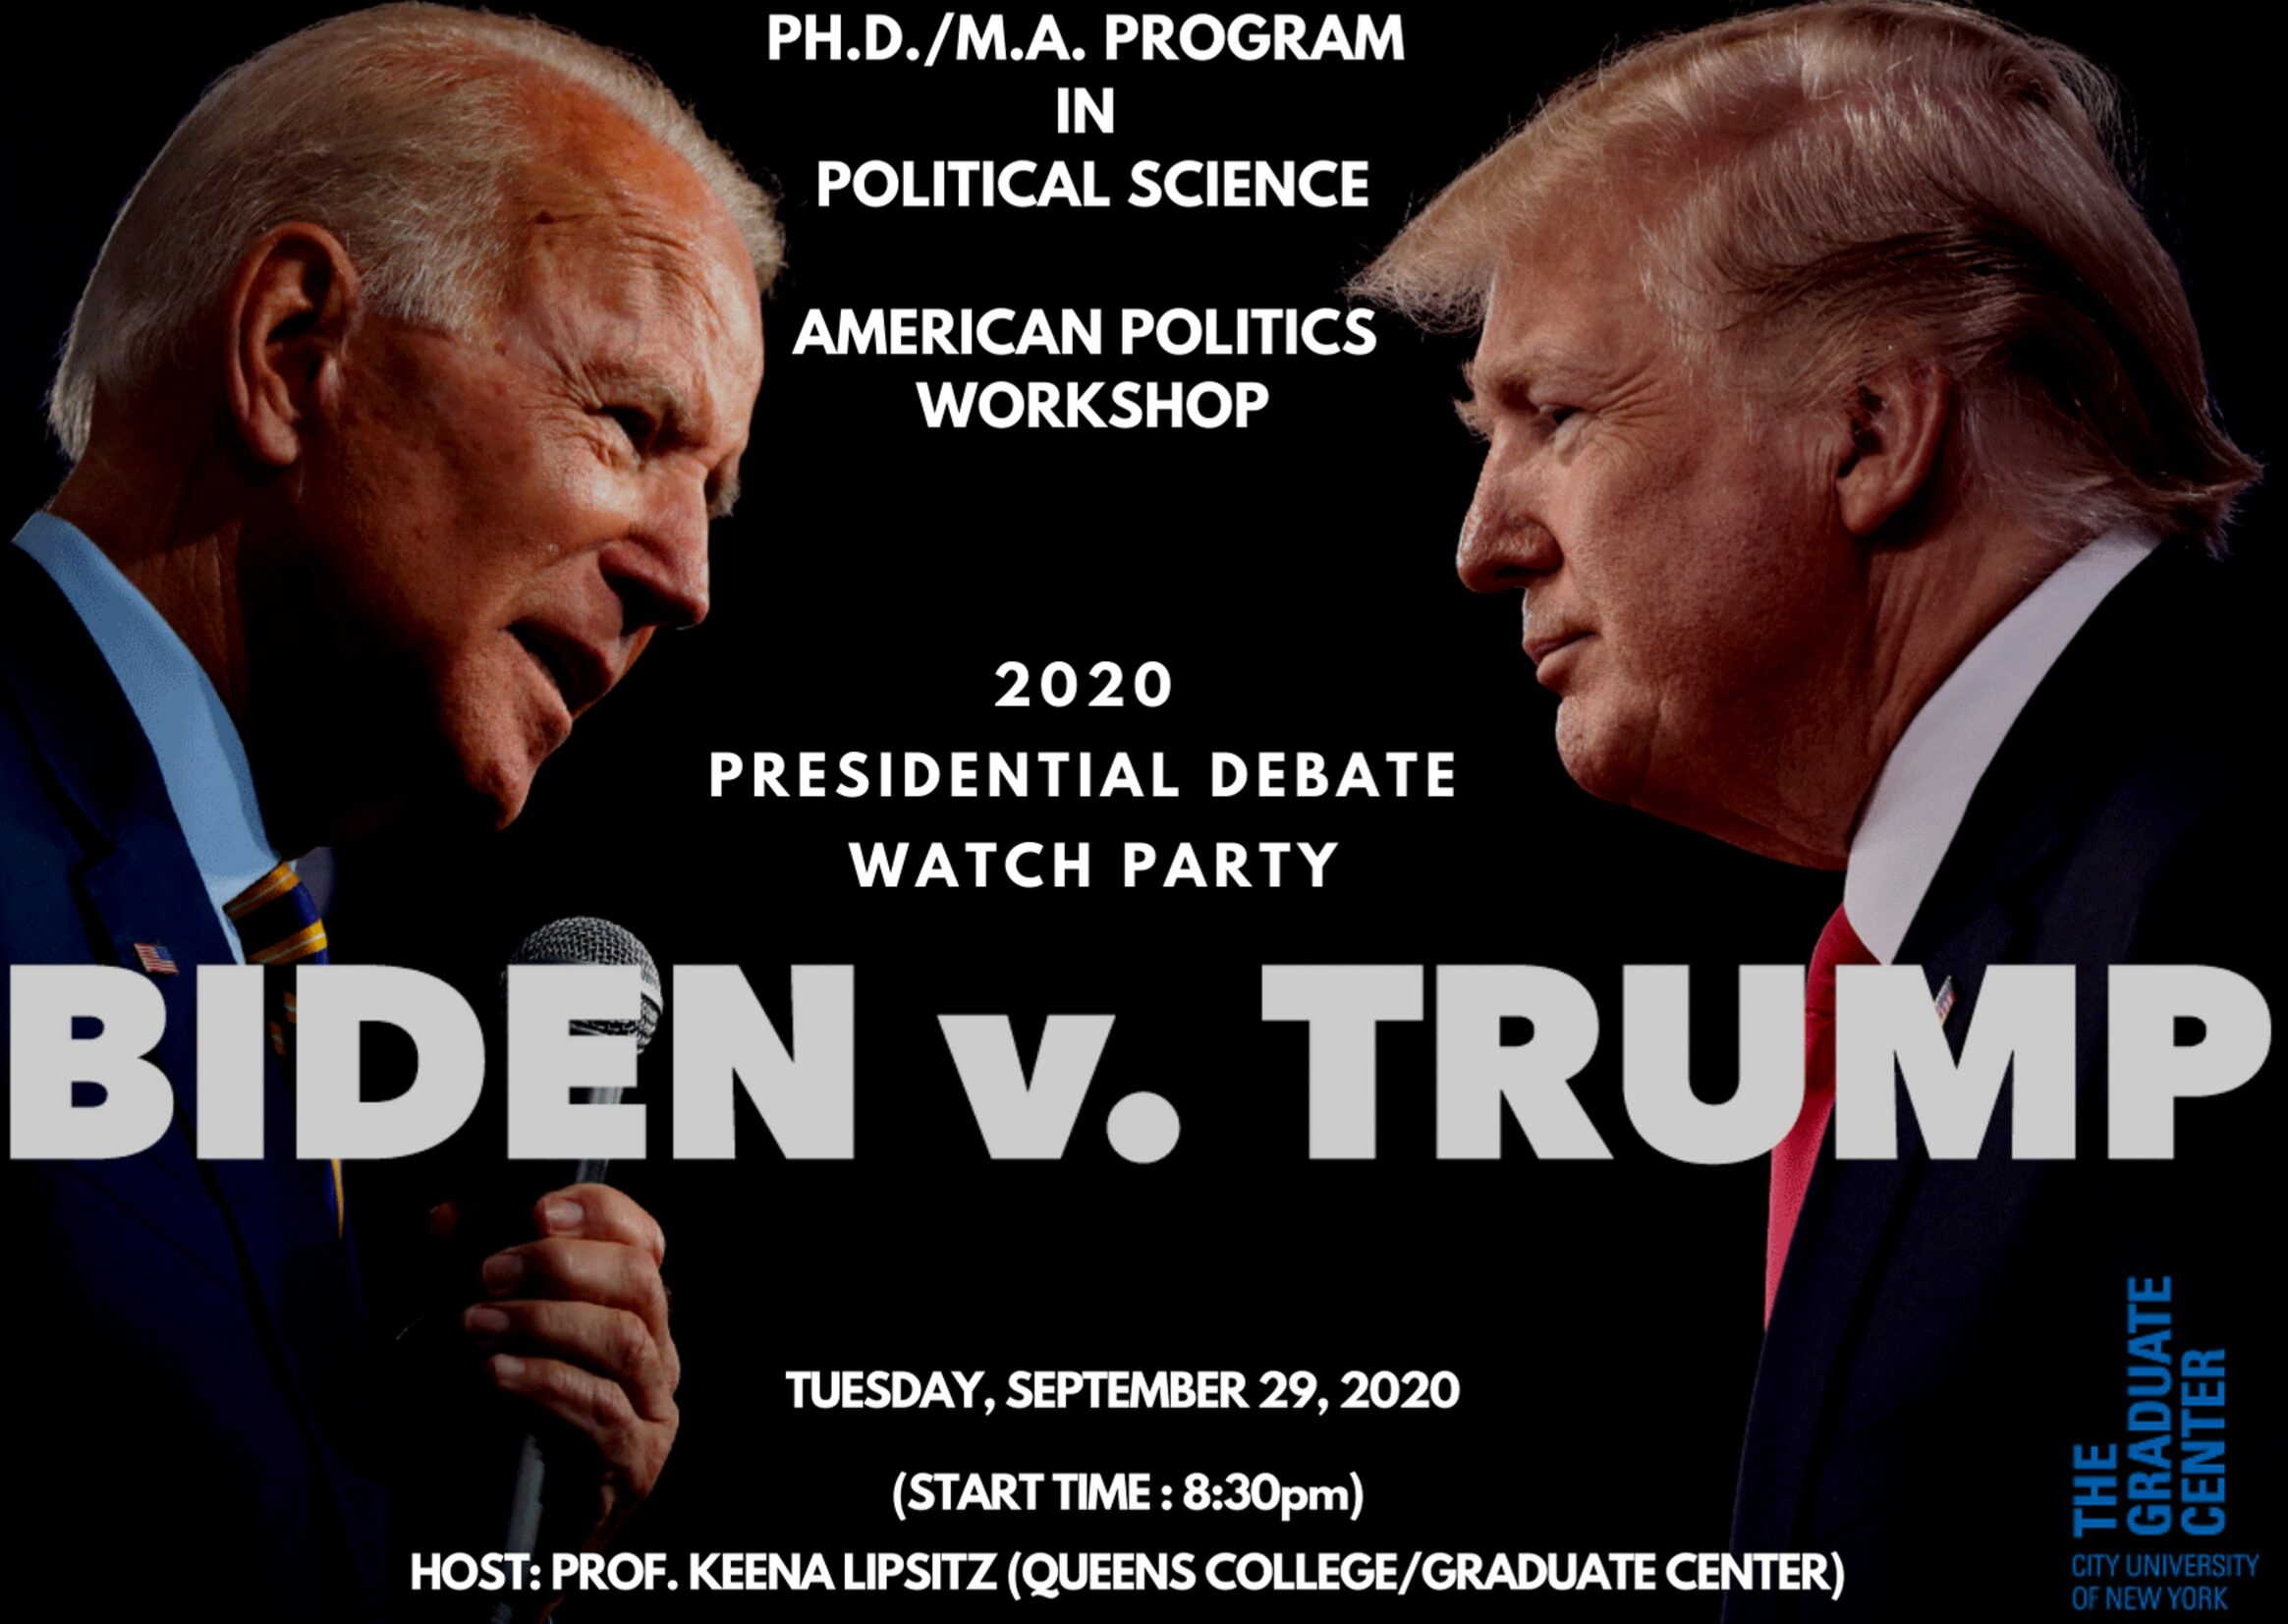 Election Series: Presidential Debate Watch Party: Tuesday, September 29, 8:30PM